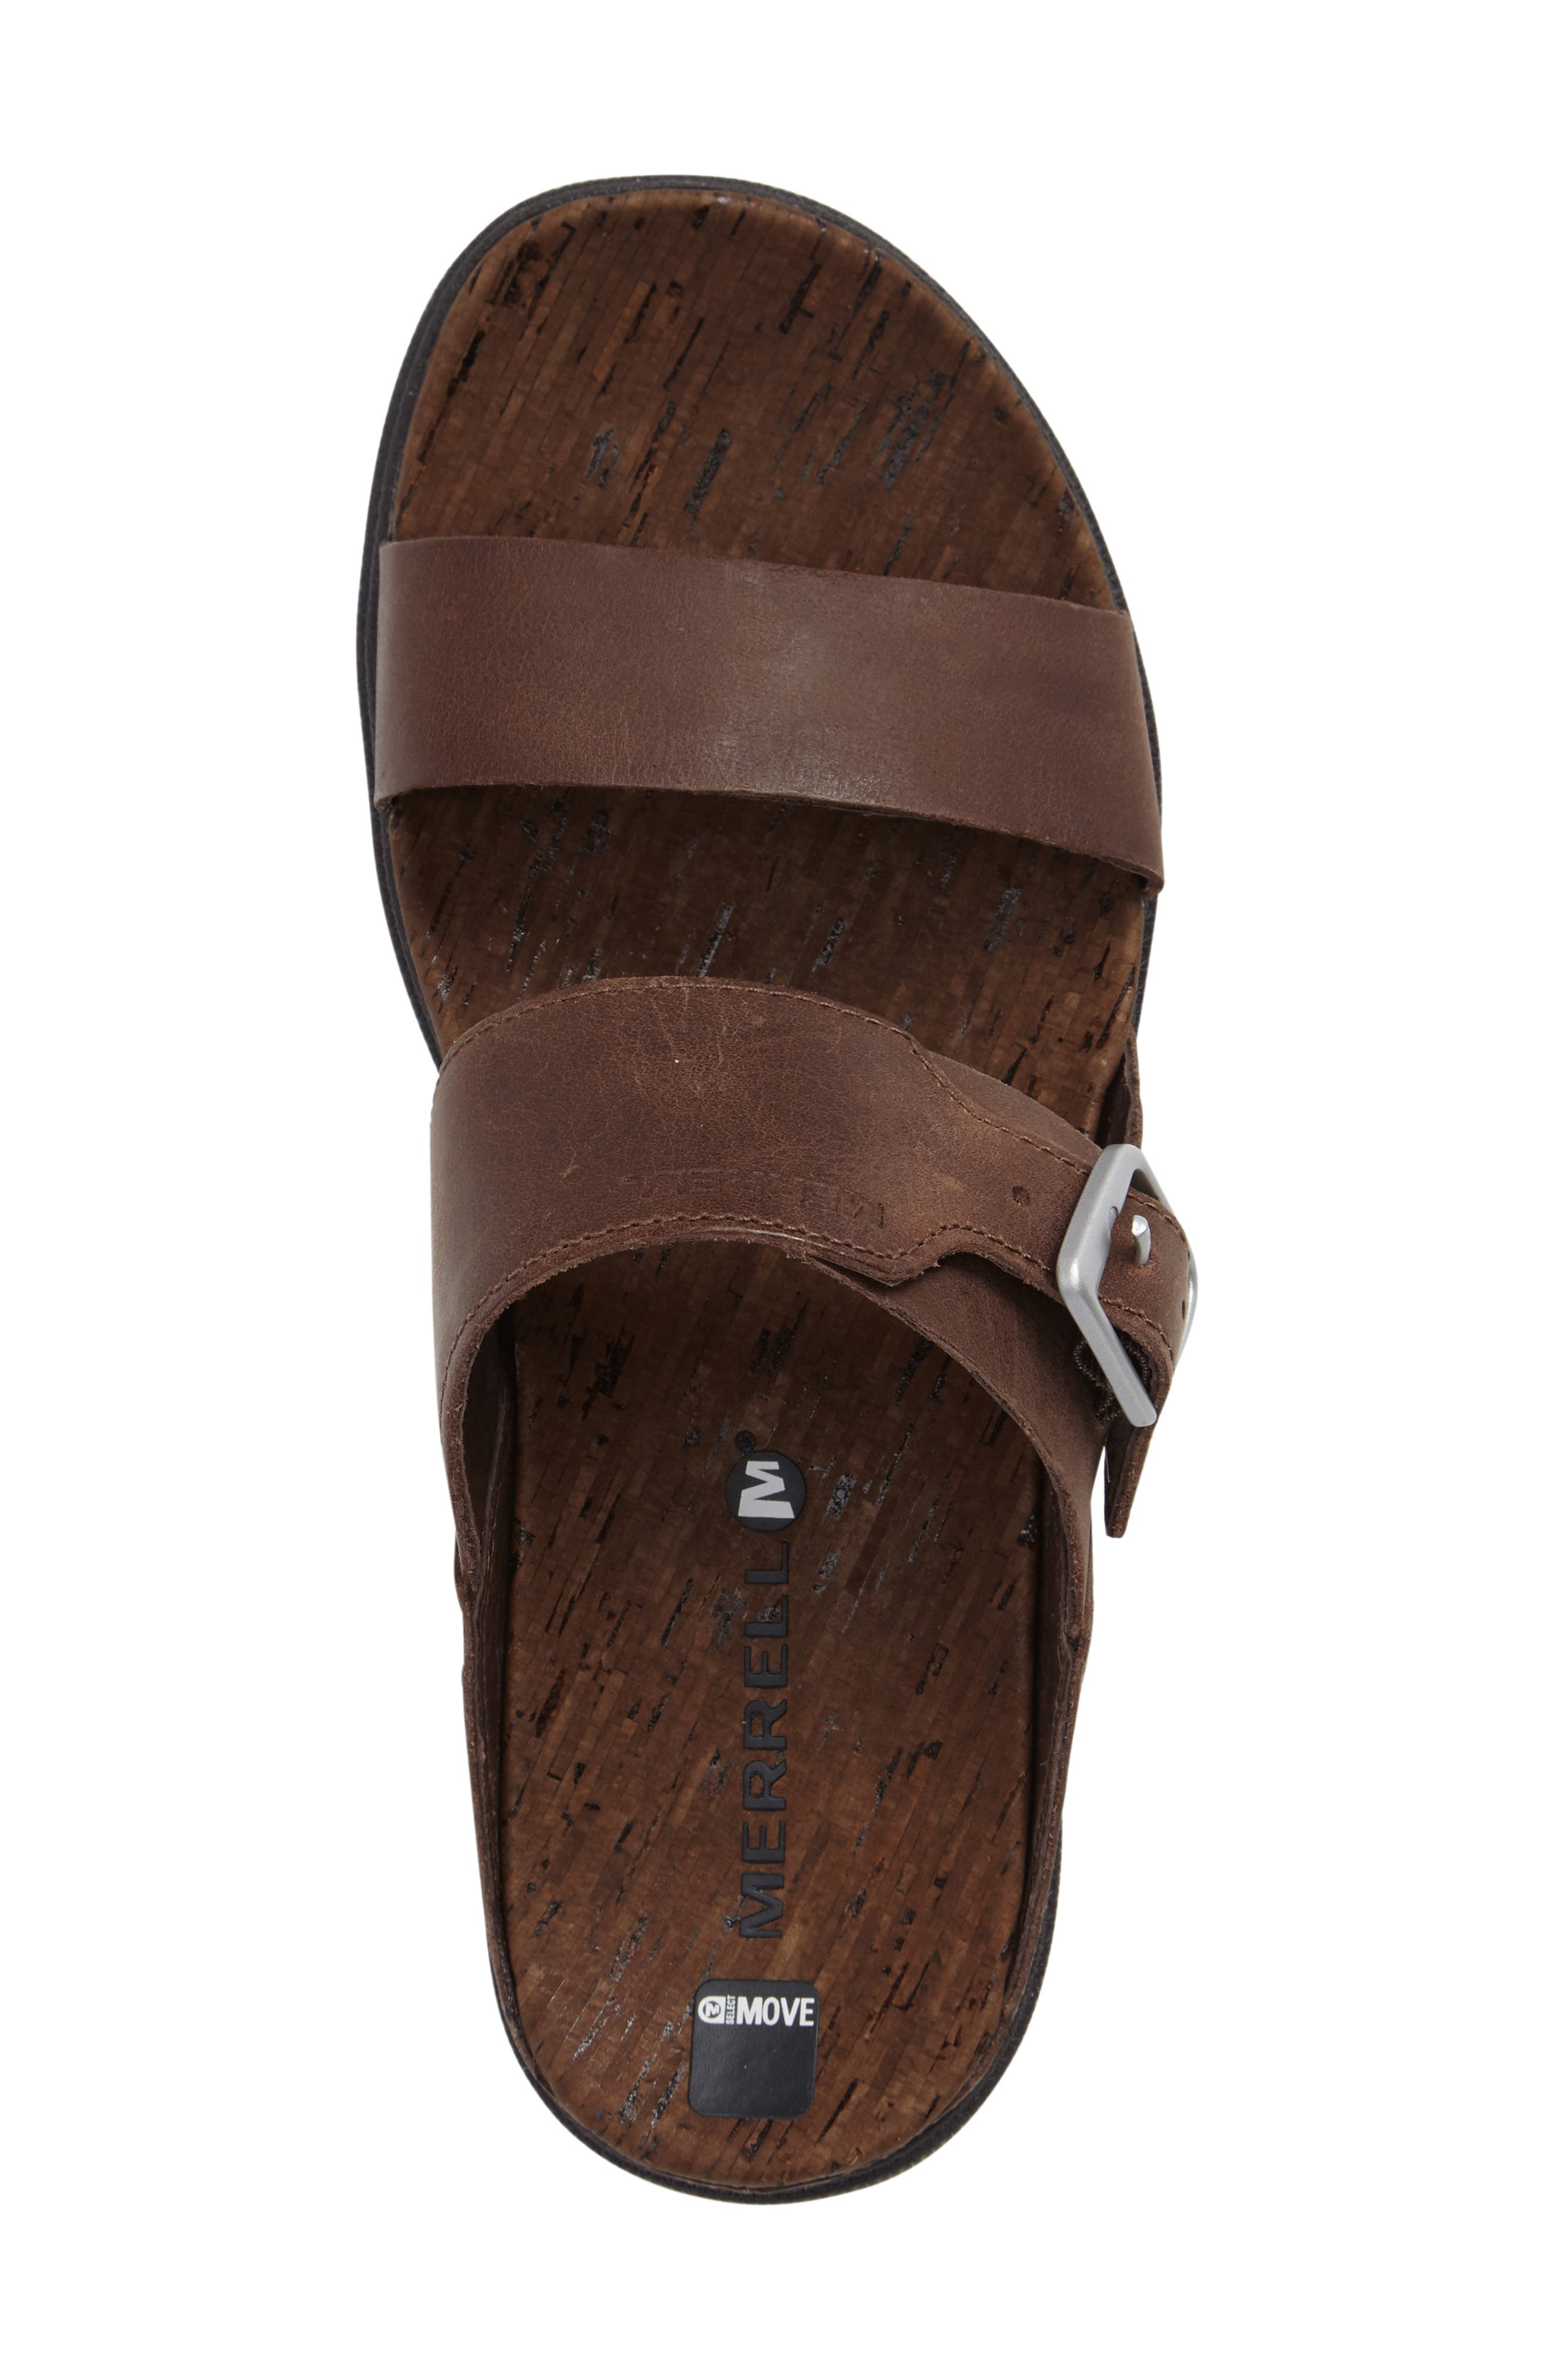 Around Town Slide Sandal,                             Alternate thumbnail 3, color,                             Brown Leather